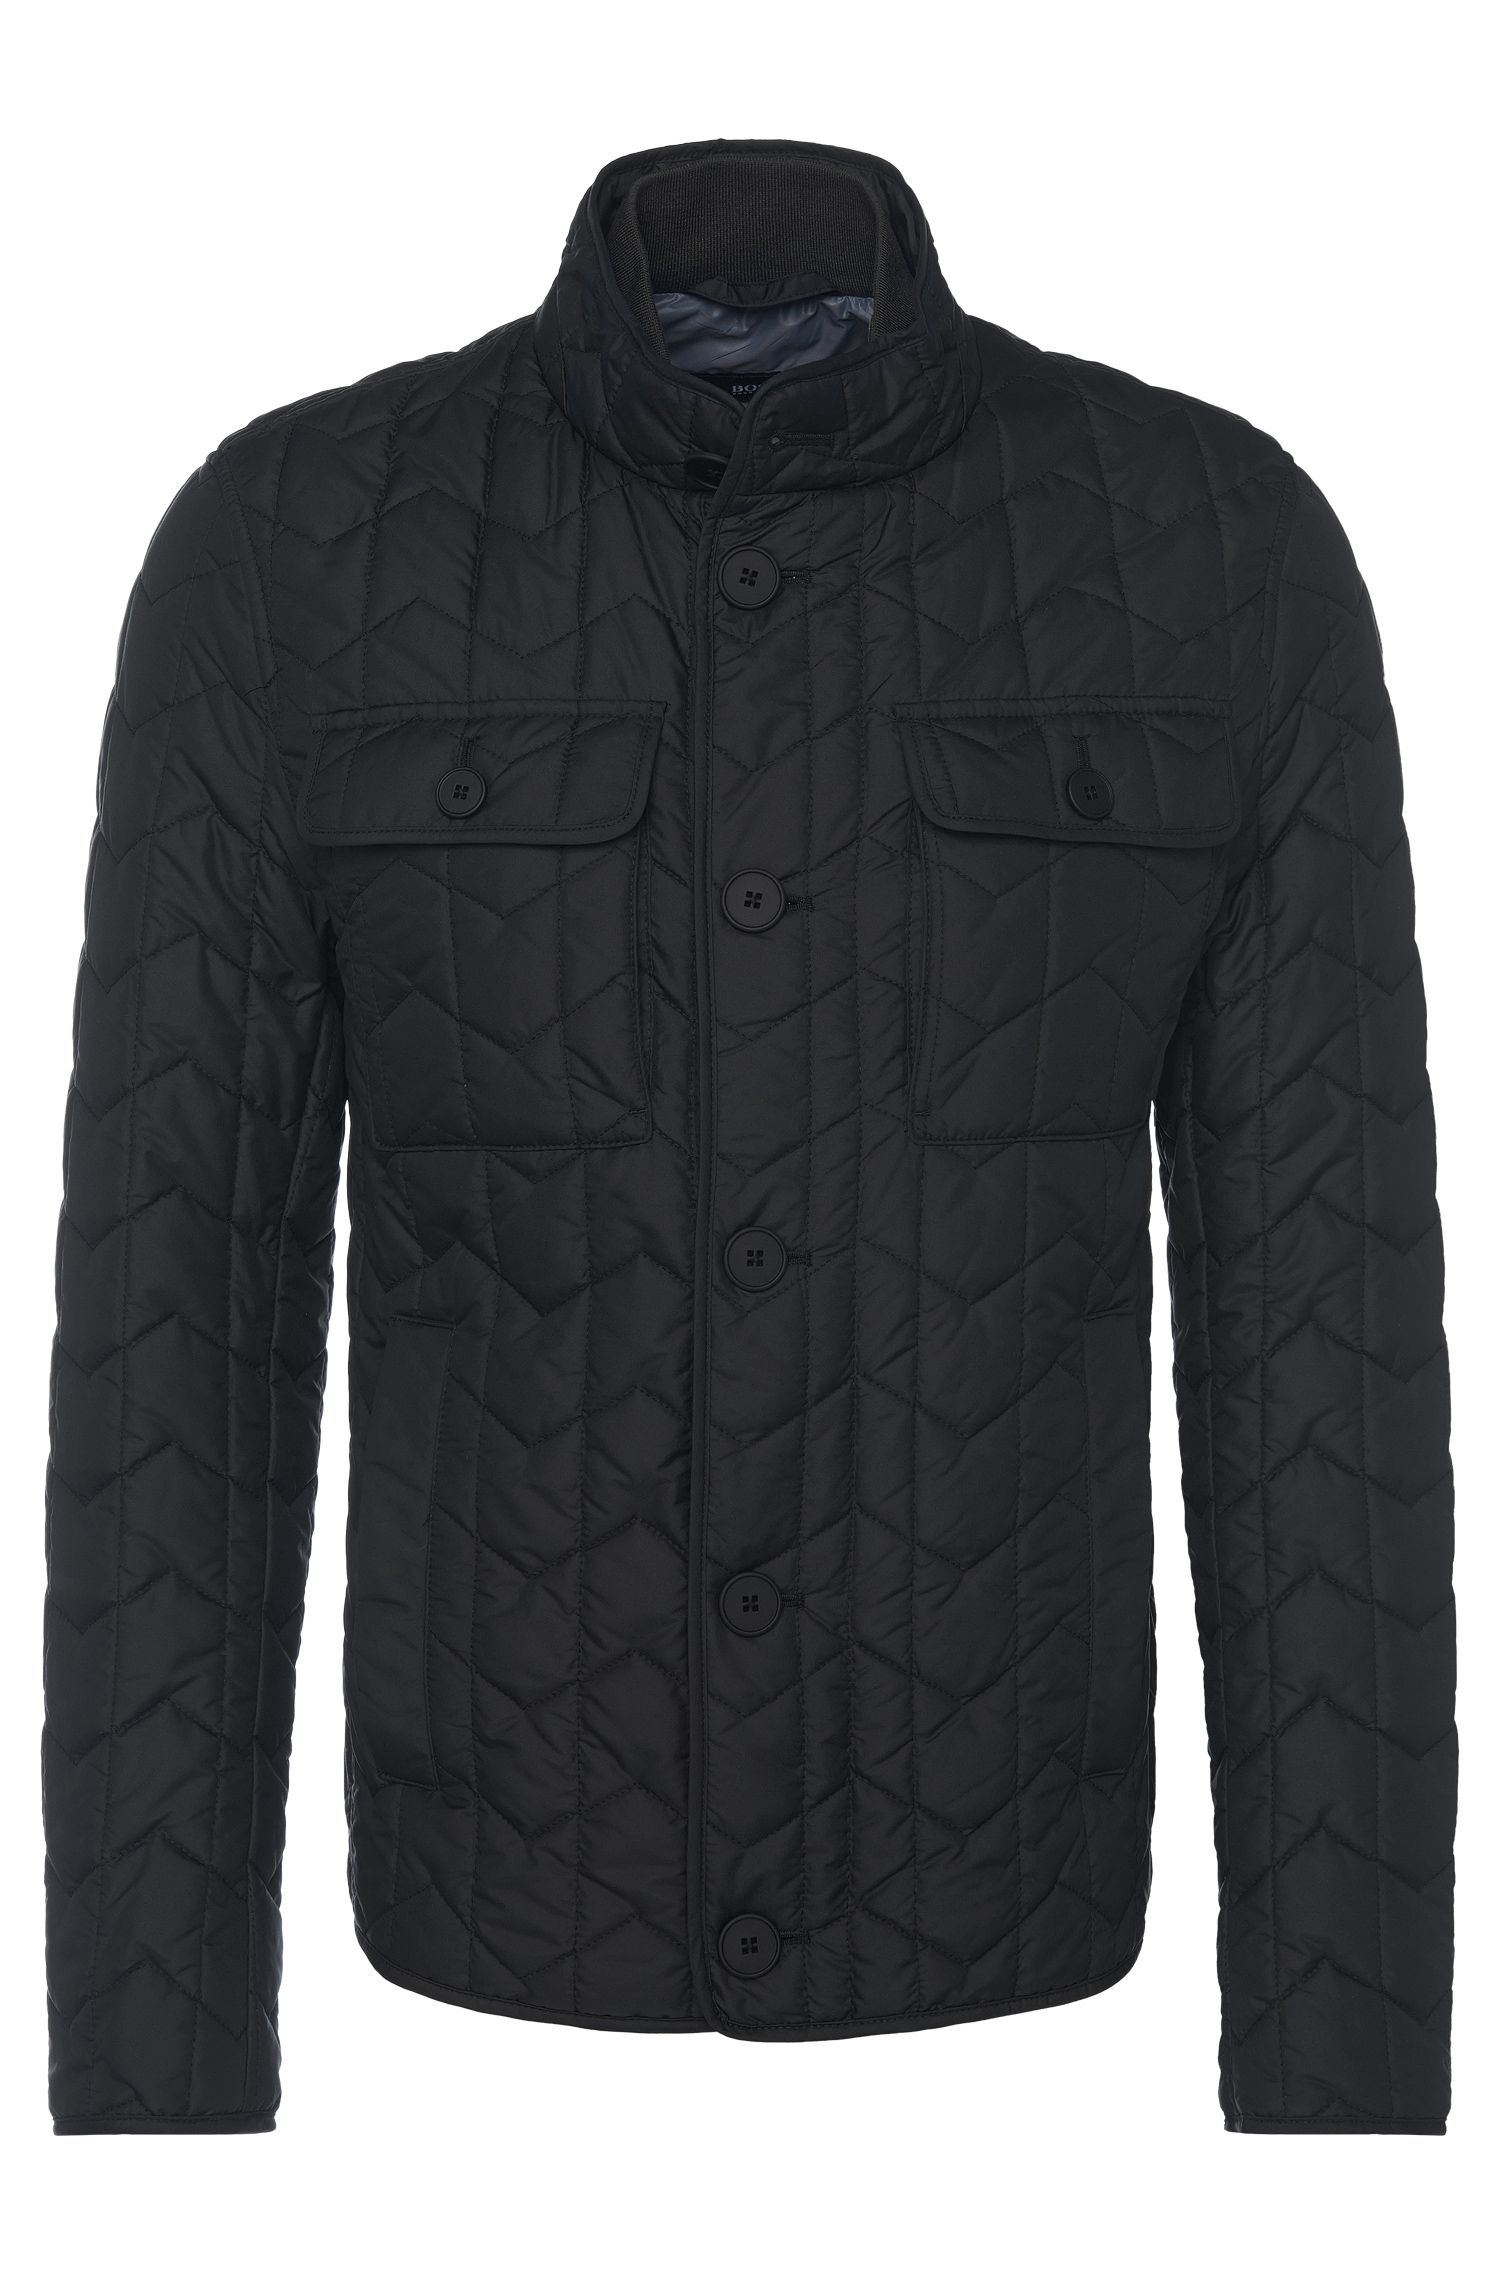 'Camano' | Quilted Wind Resistant Jacket